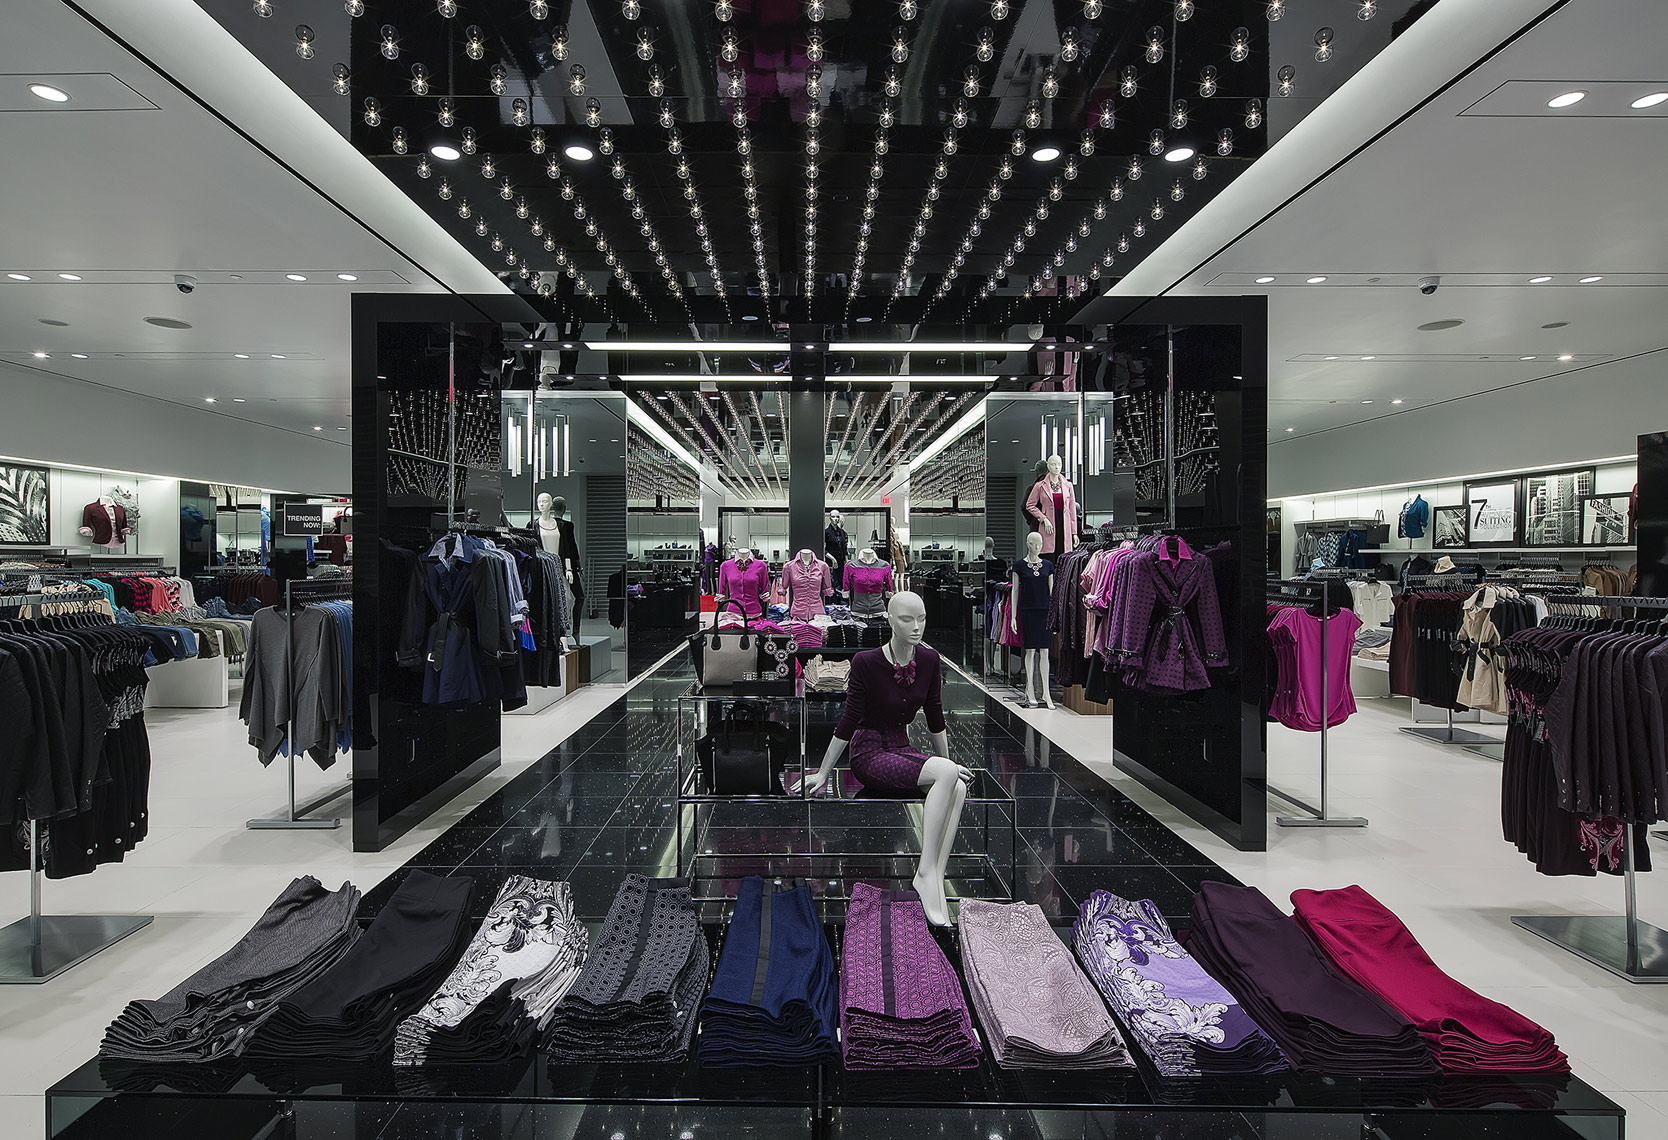 Retail design Photograper of new york and company